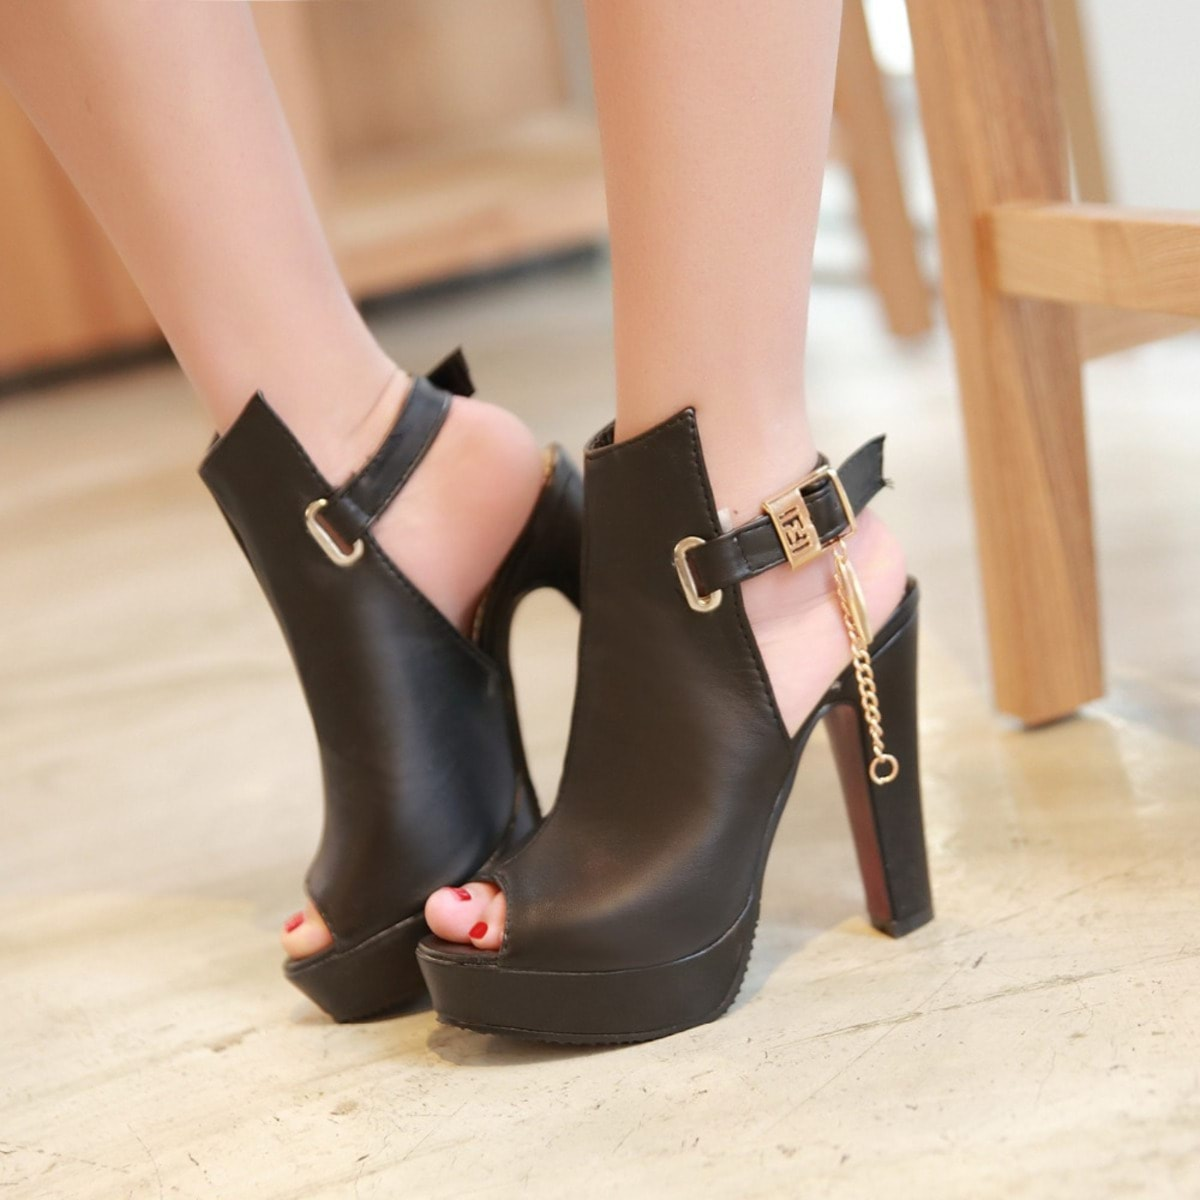 Shoes-Woman-2015-New-Arrival-Thick-Heel-Platform-Fashion-Party-High-Heels-Hot-Sale-Open-Toe